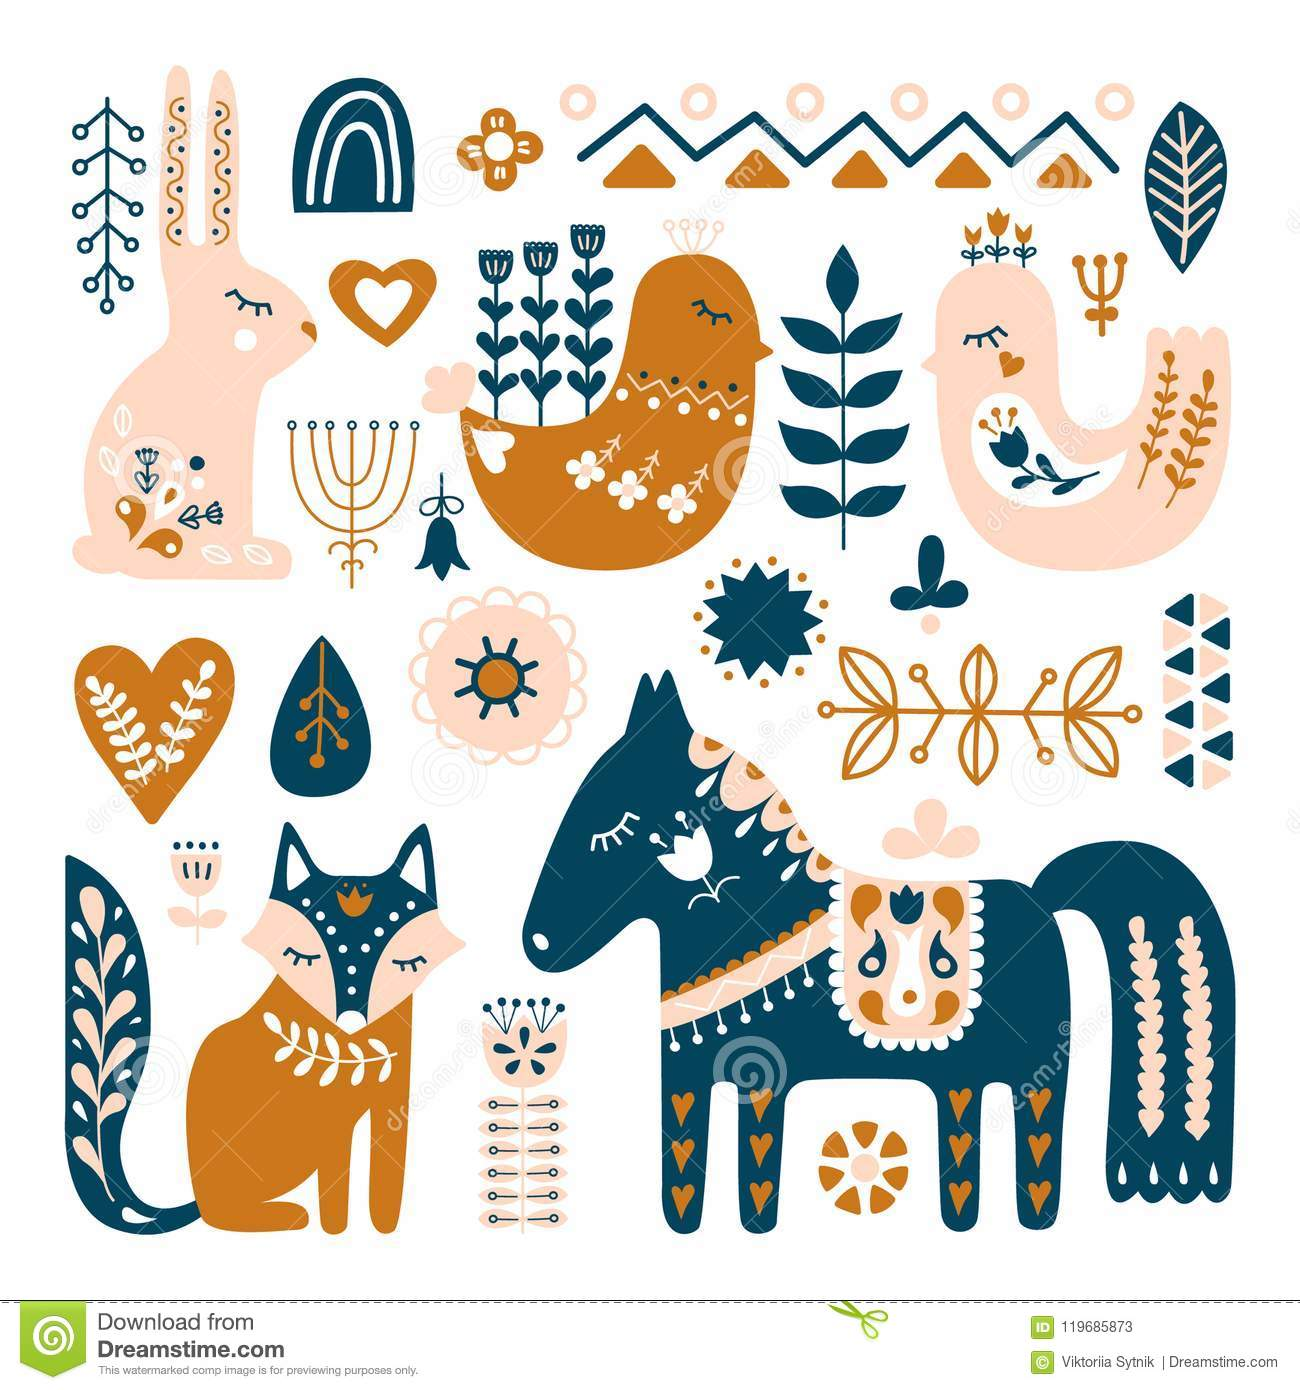 Composition with Folk art animals and decorative elements.